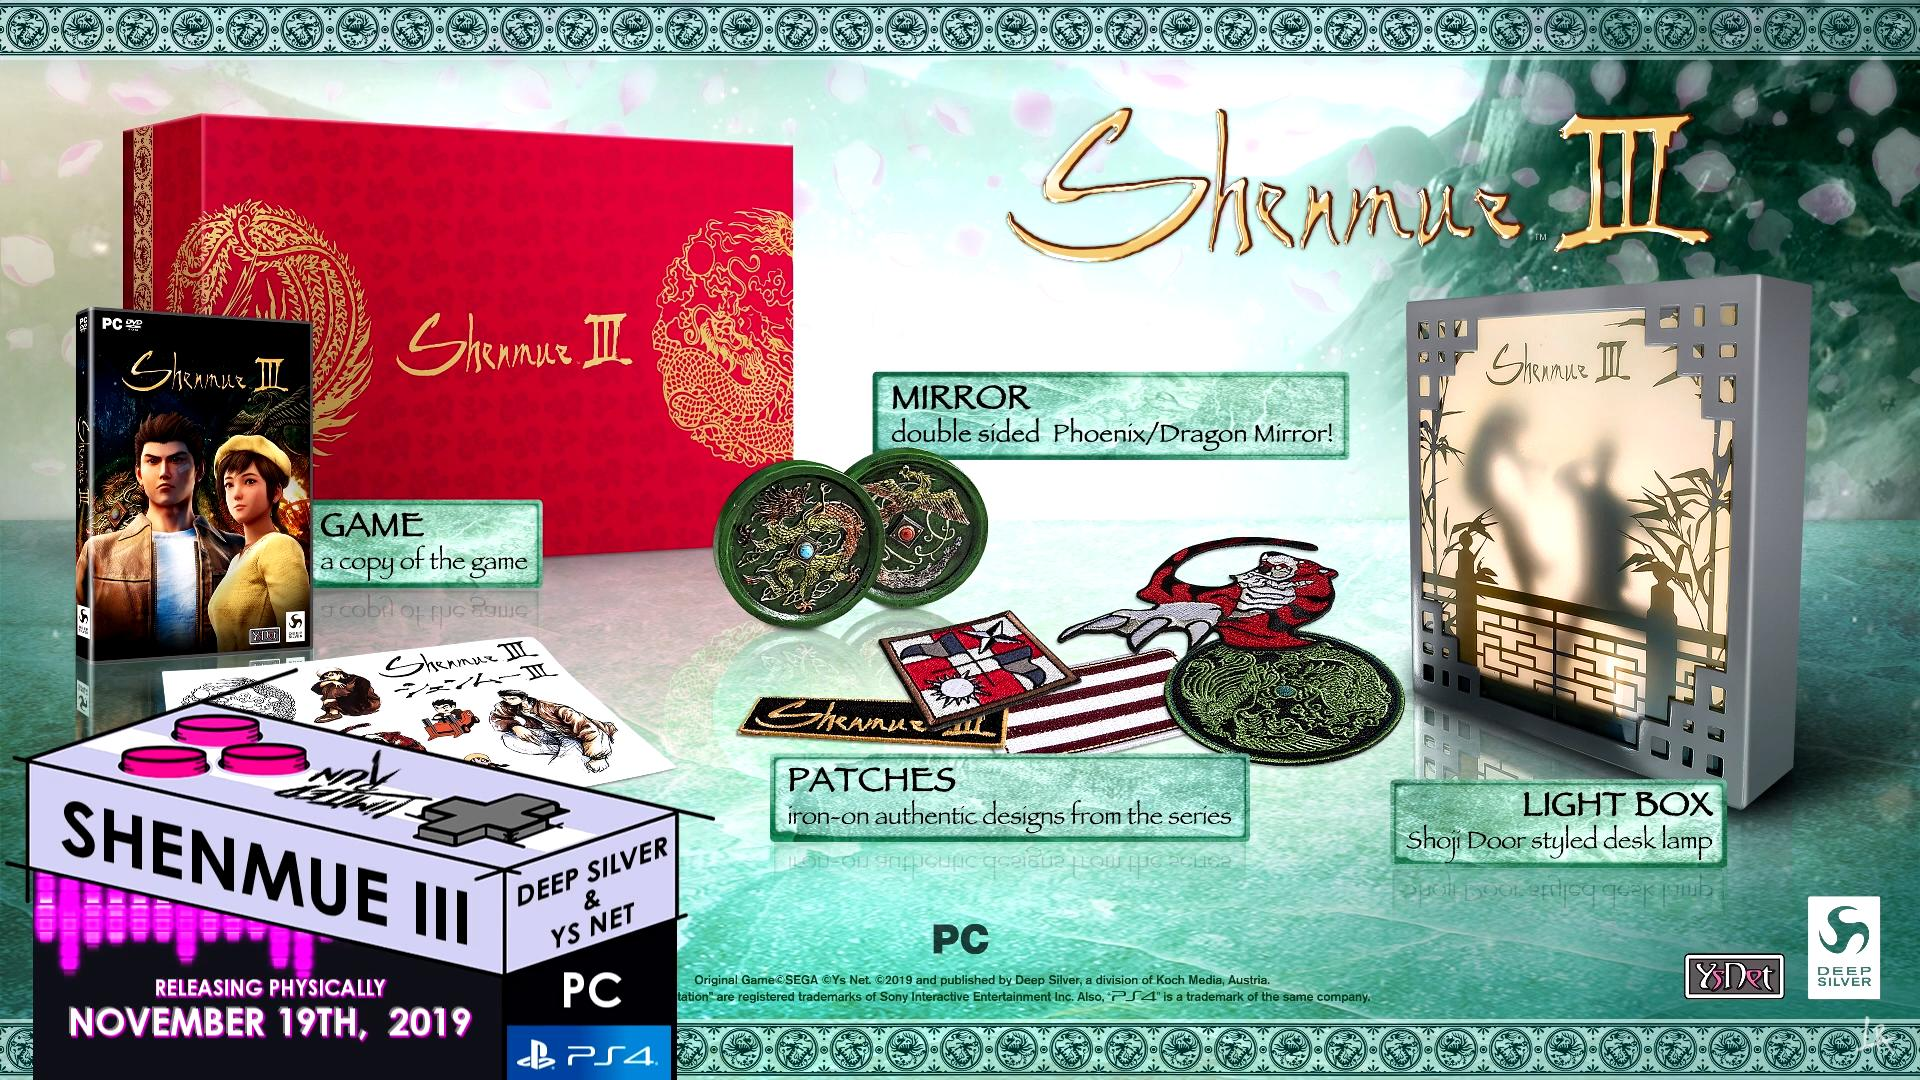 Limited Run Games - Shenmue III